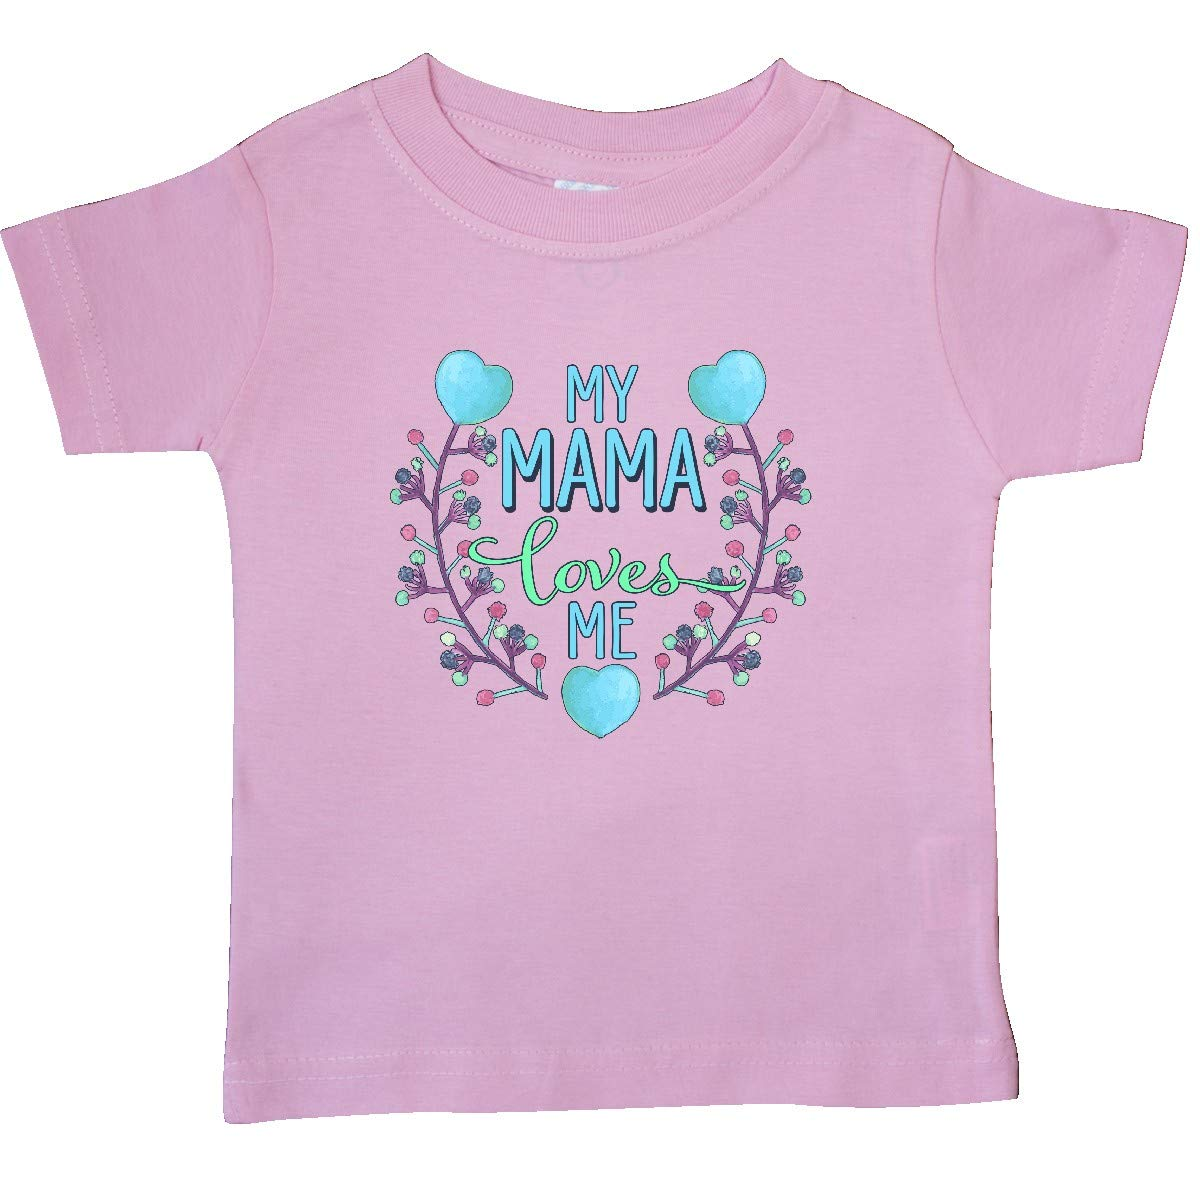 Painted Flowers and Hearts Baby T-Shirt inktastic My Mama Loves Me